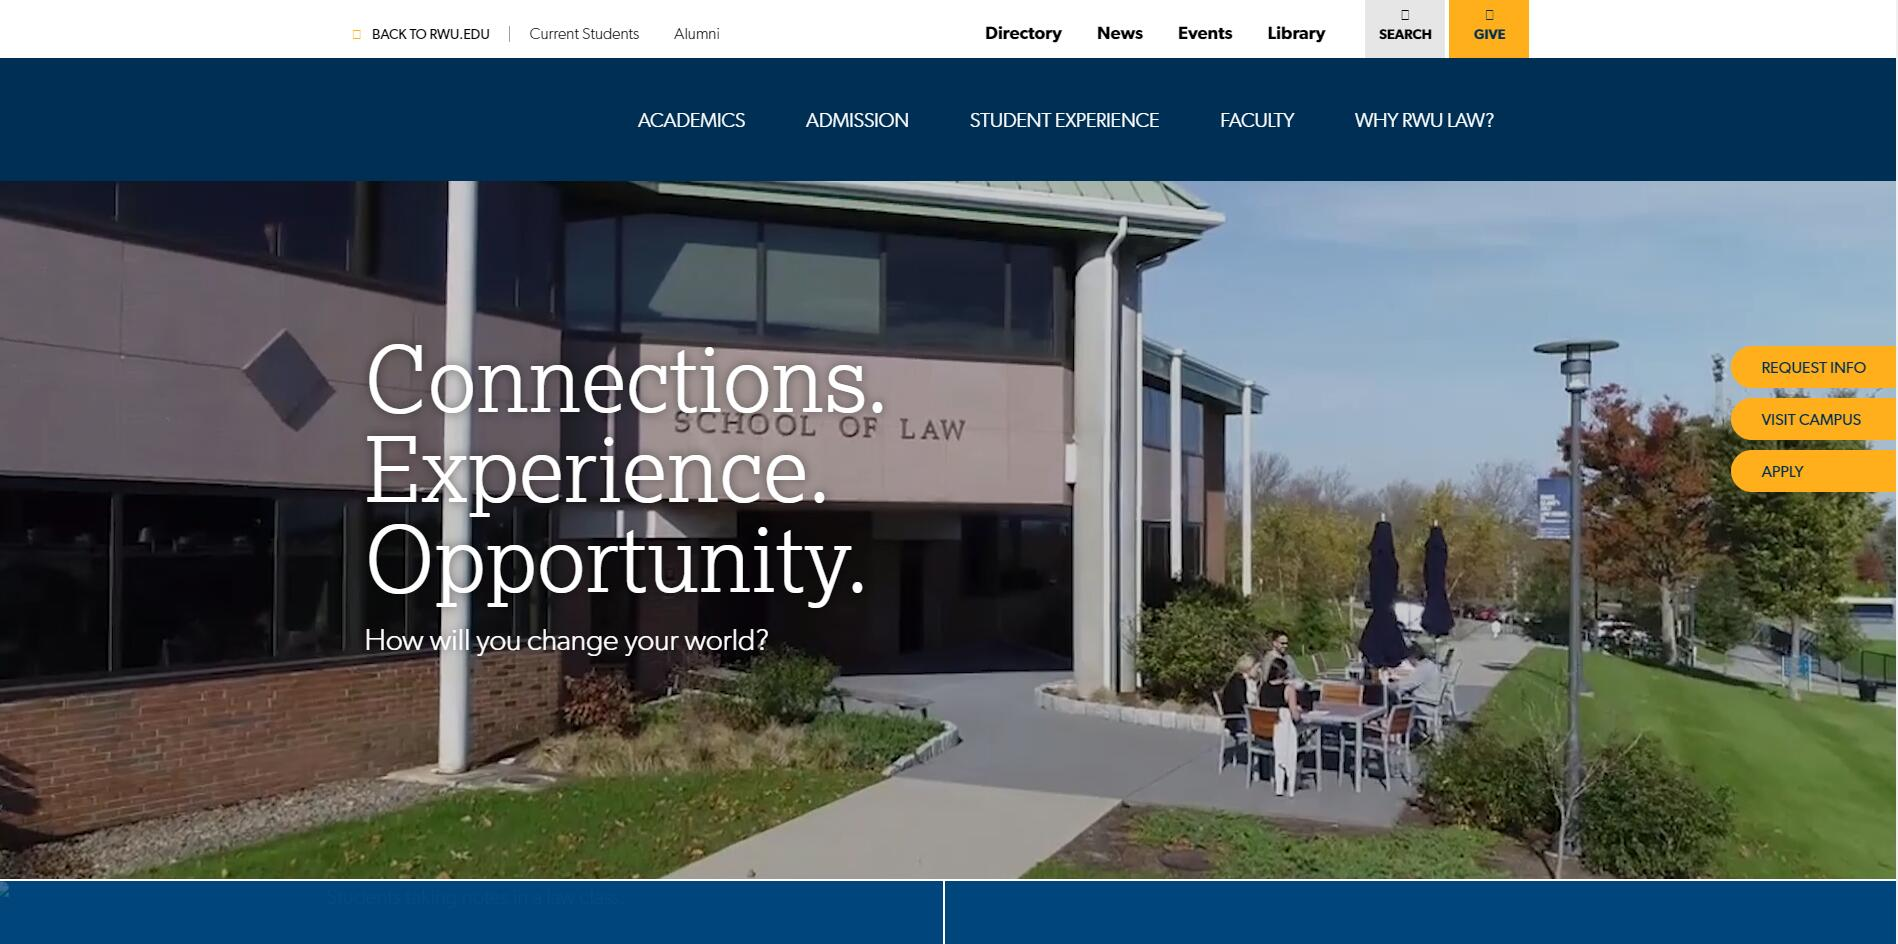 The School of Law at Roger Williams University